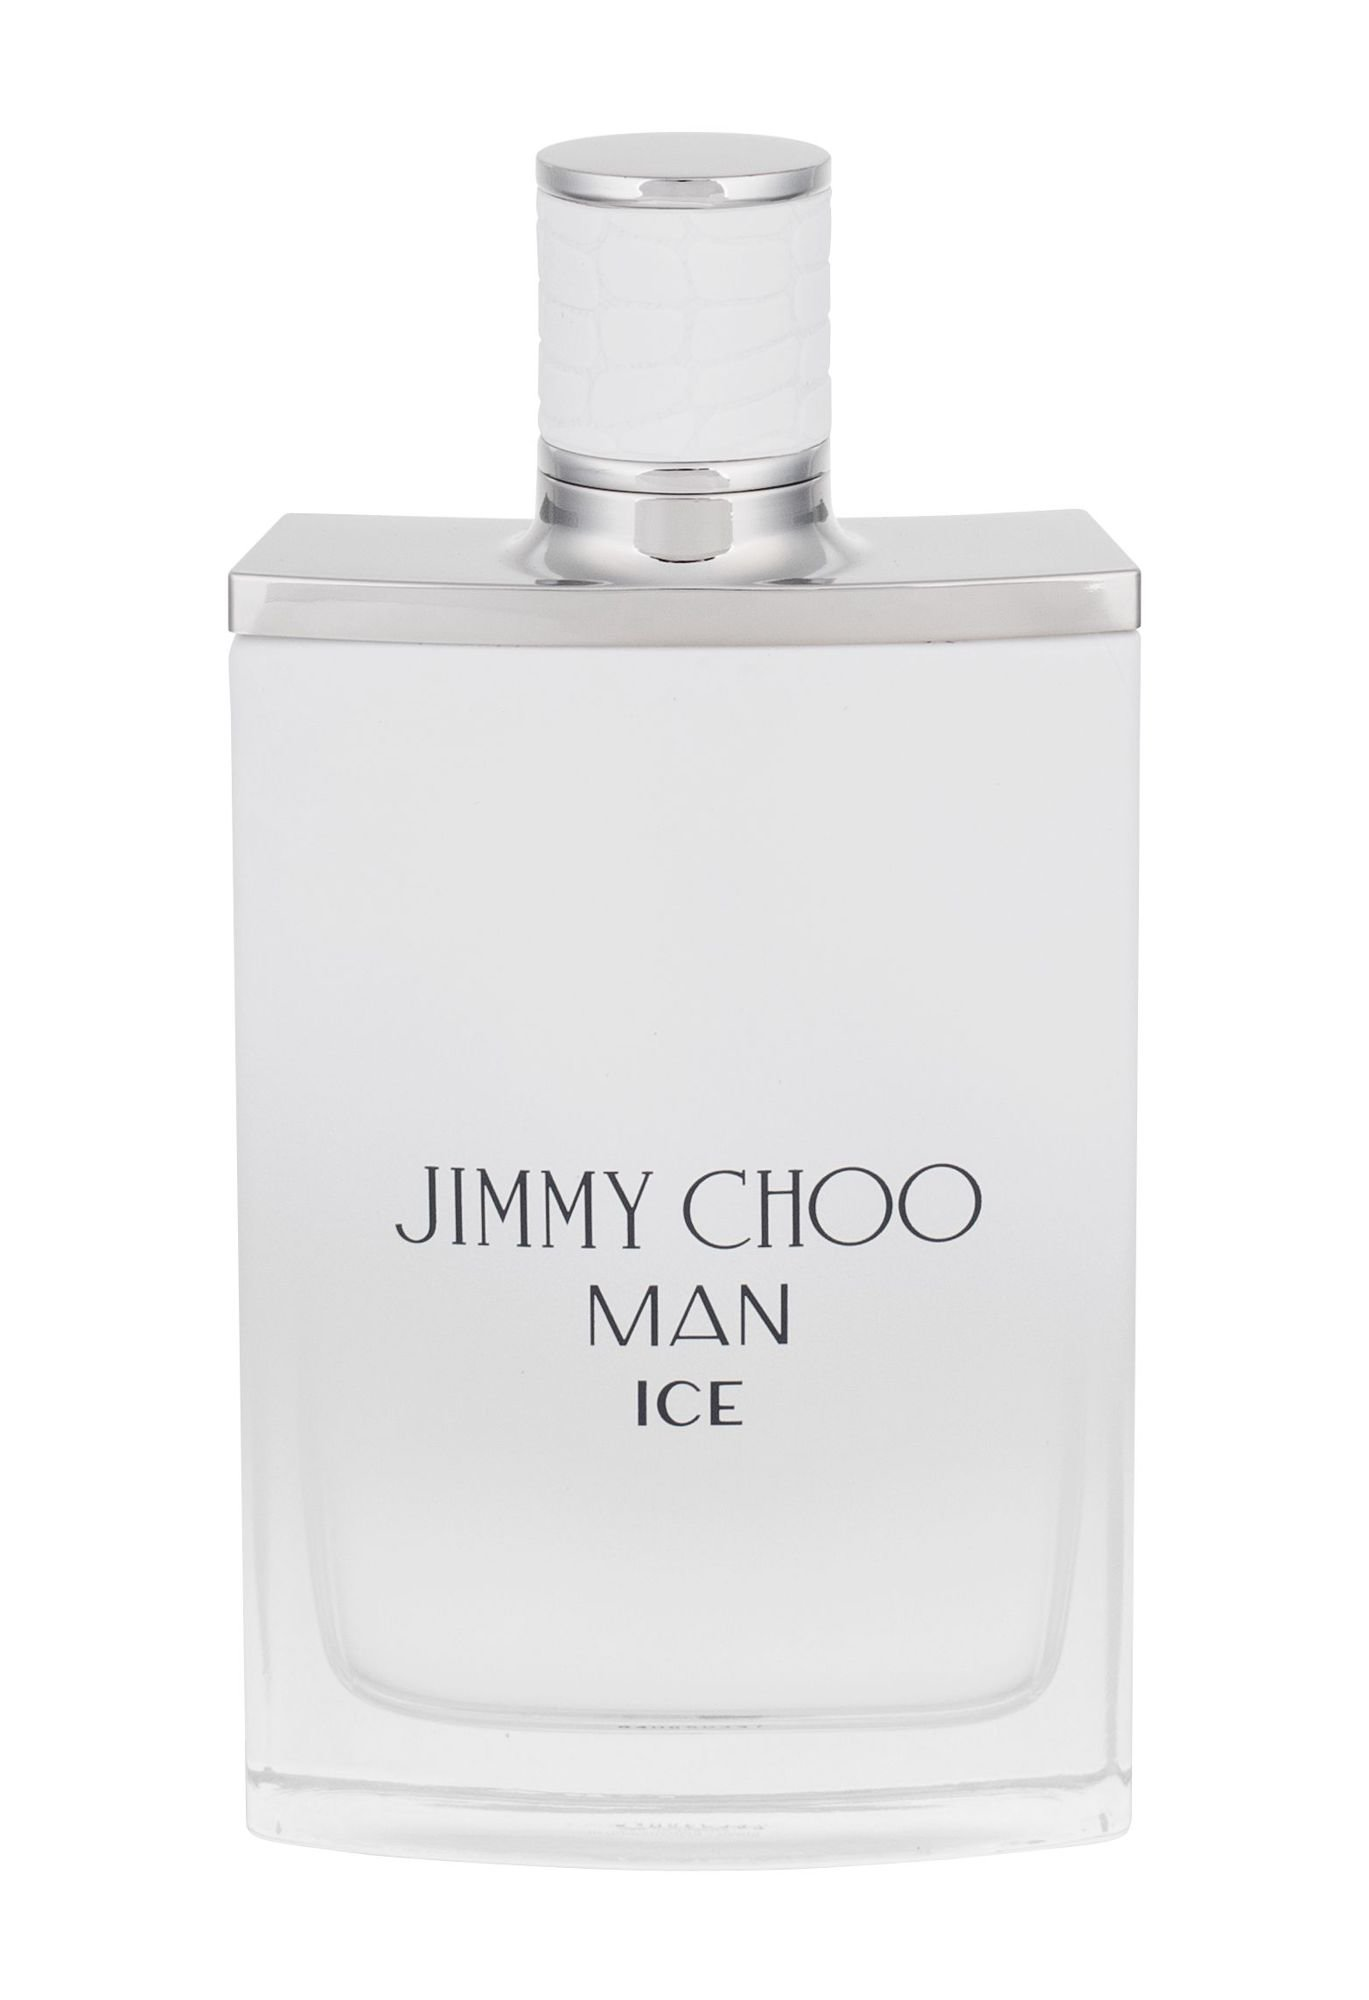 Jimmy Choo Jimmy Choo Man Ice, Toaletná voda 100ml